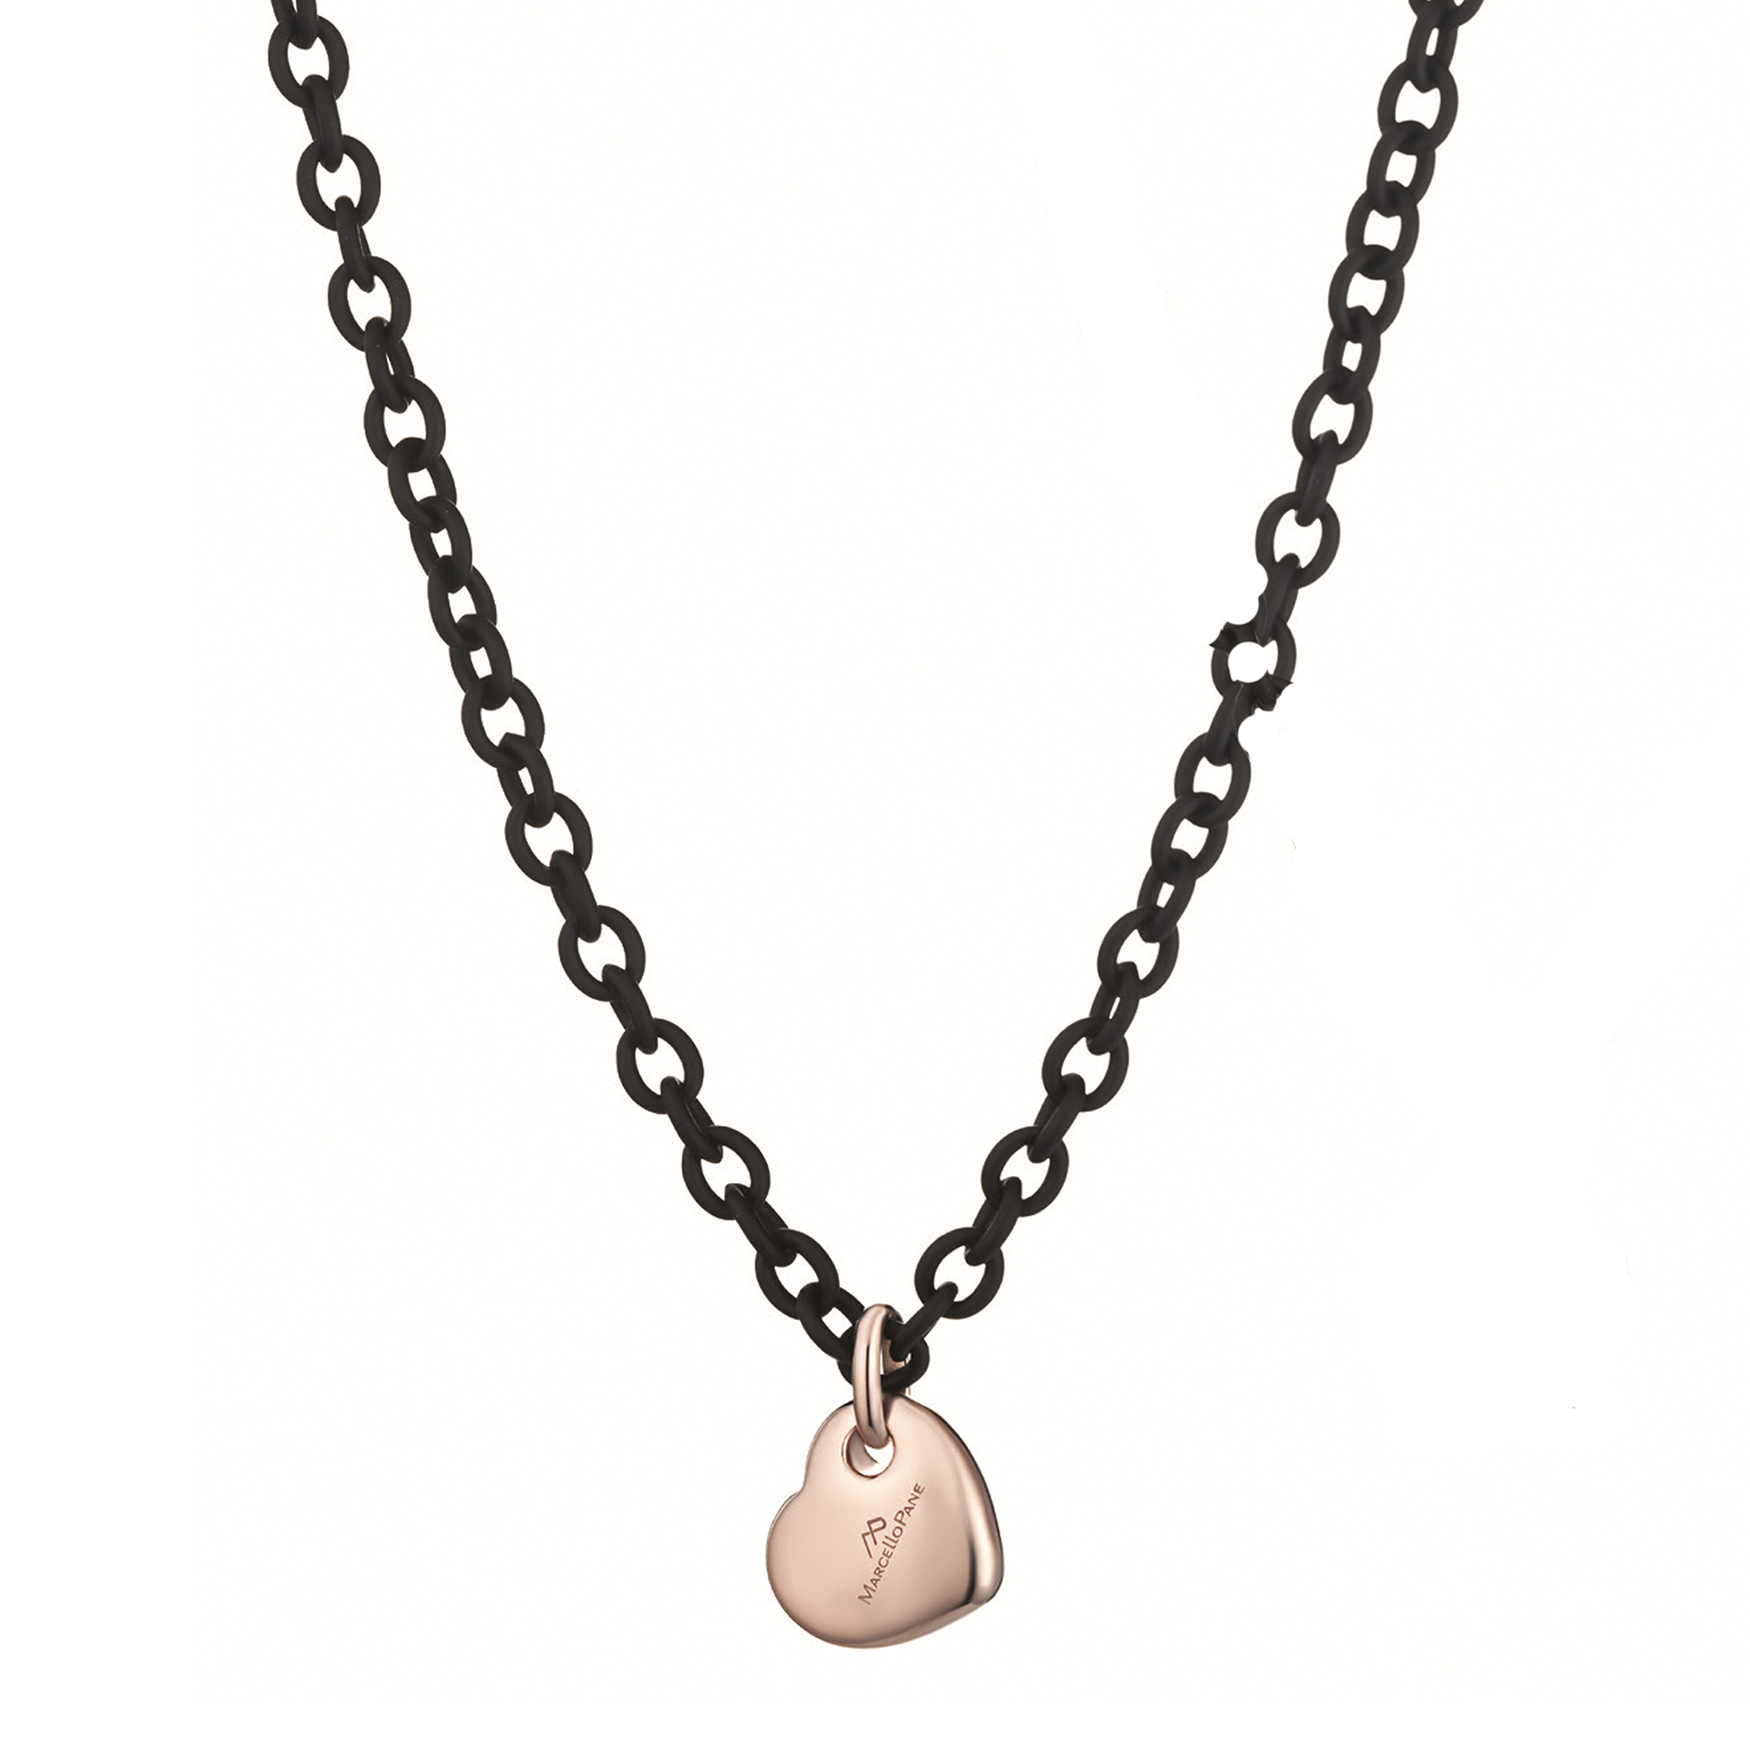 Sensi joyas jewellery Granada silver engagementSILVER NECKLACE WITH ROSE GOLD COATING AND RUBBER ( 48+3,5 cm )